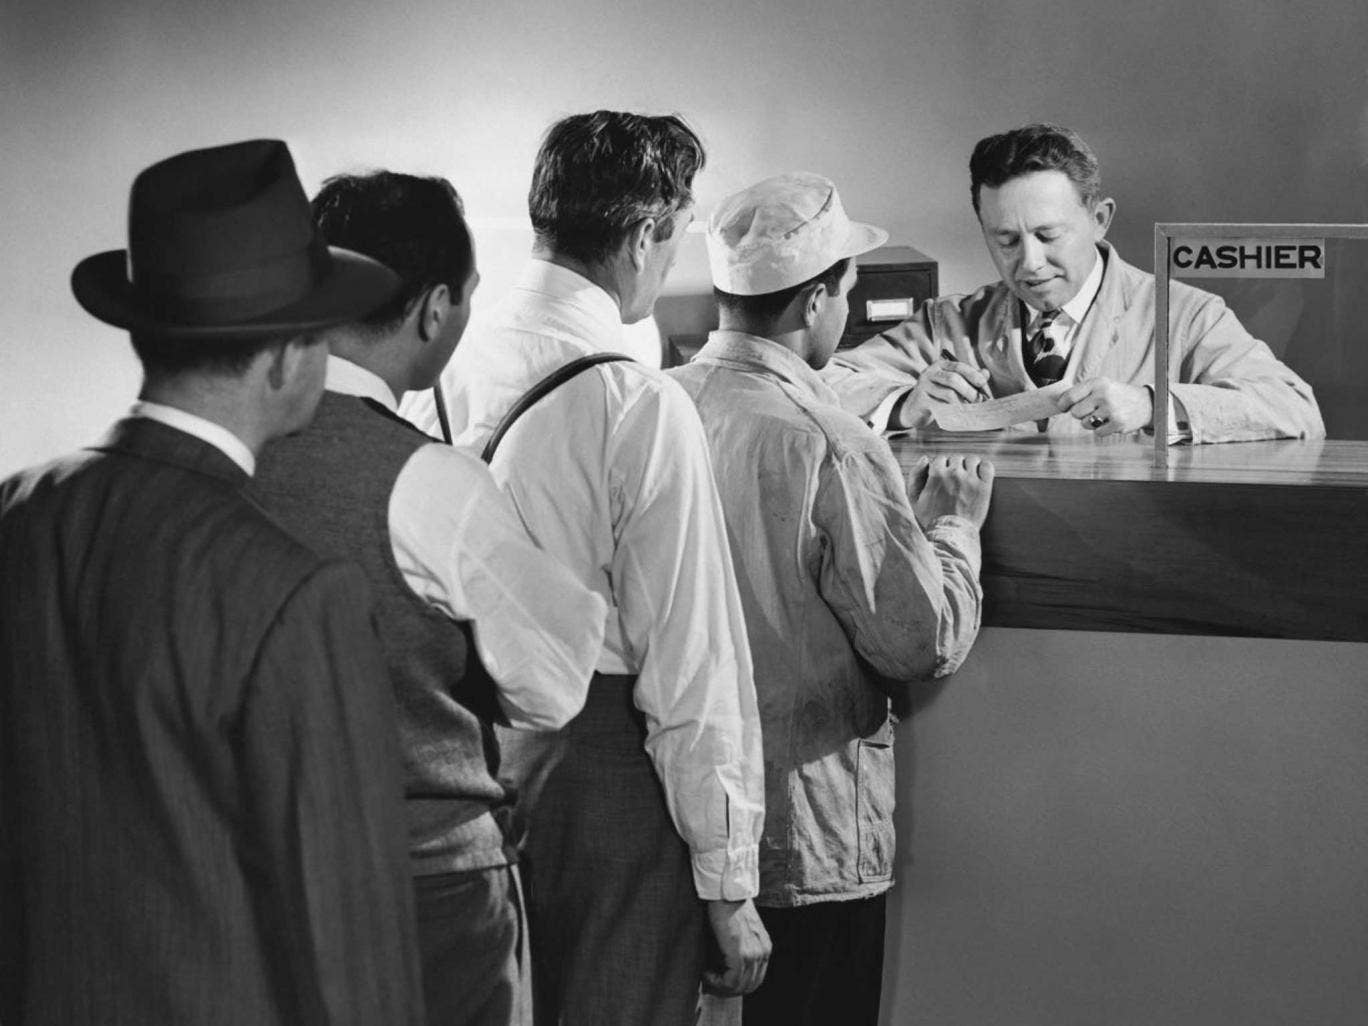 Counter interrogation: Some customers seeking to take out large sums have been asked for explanations